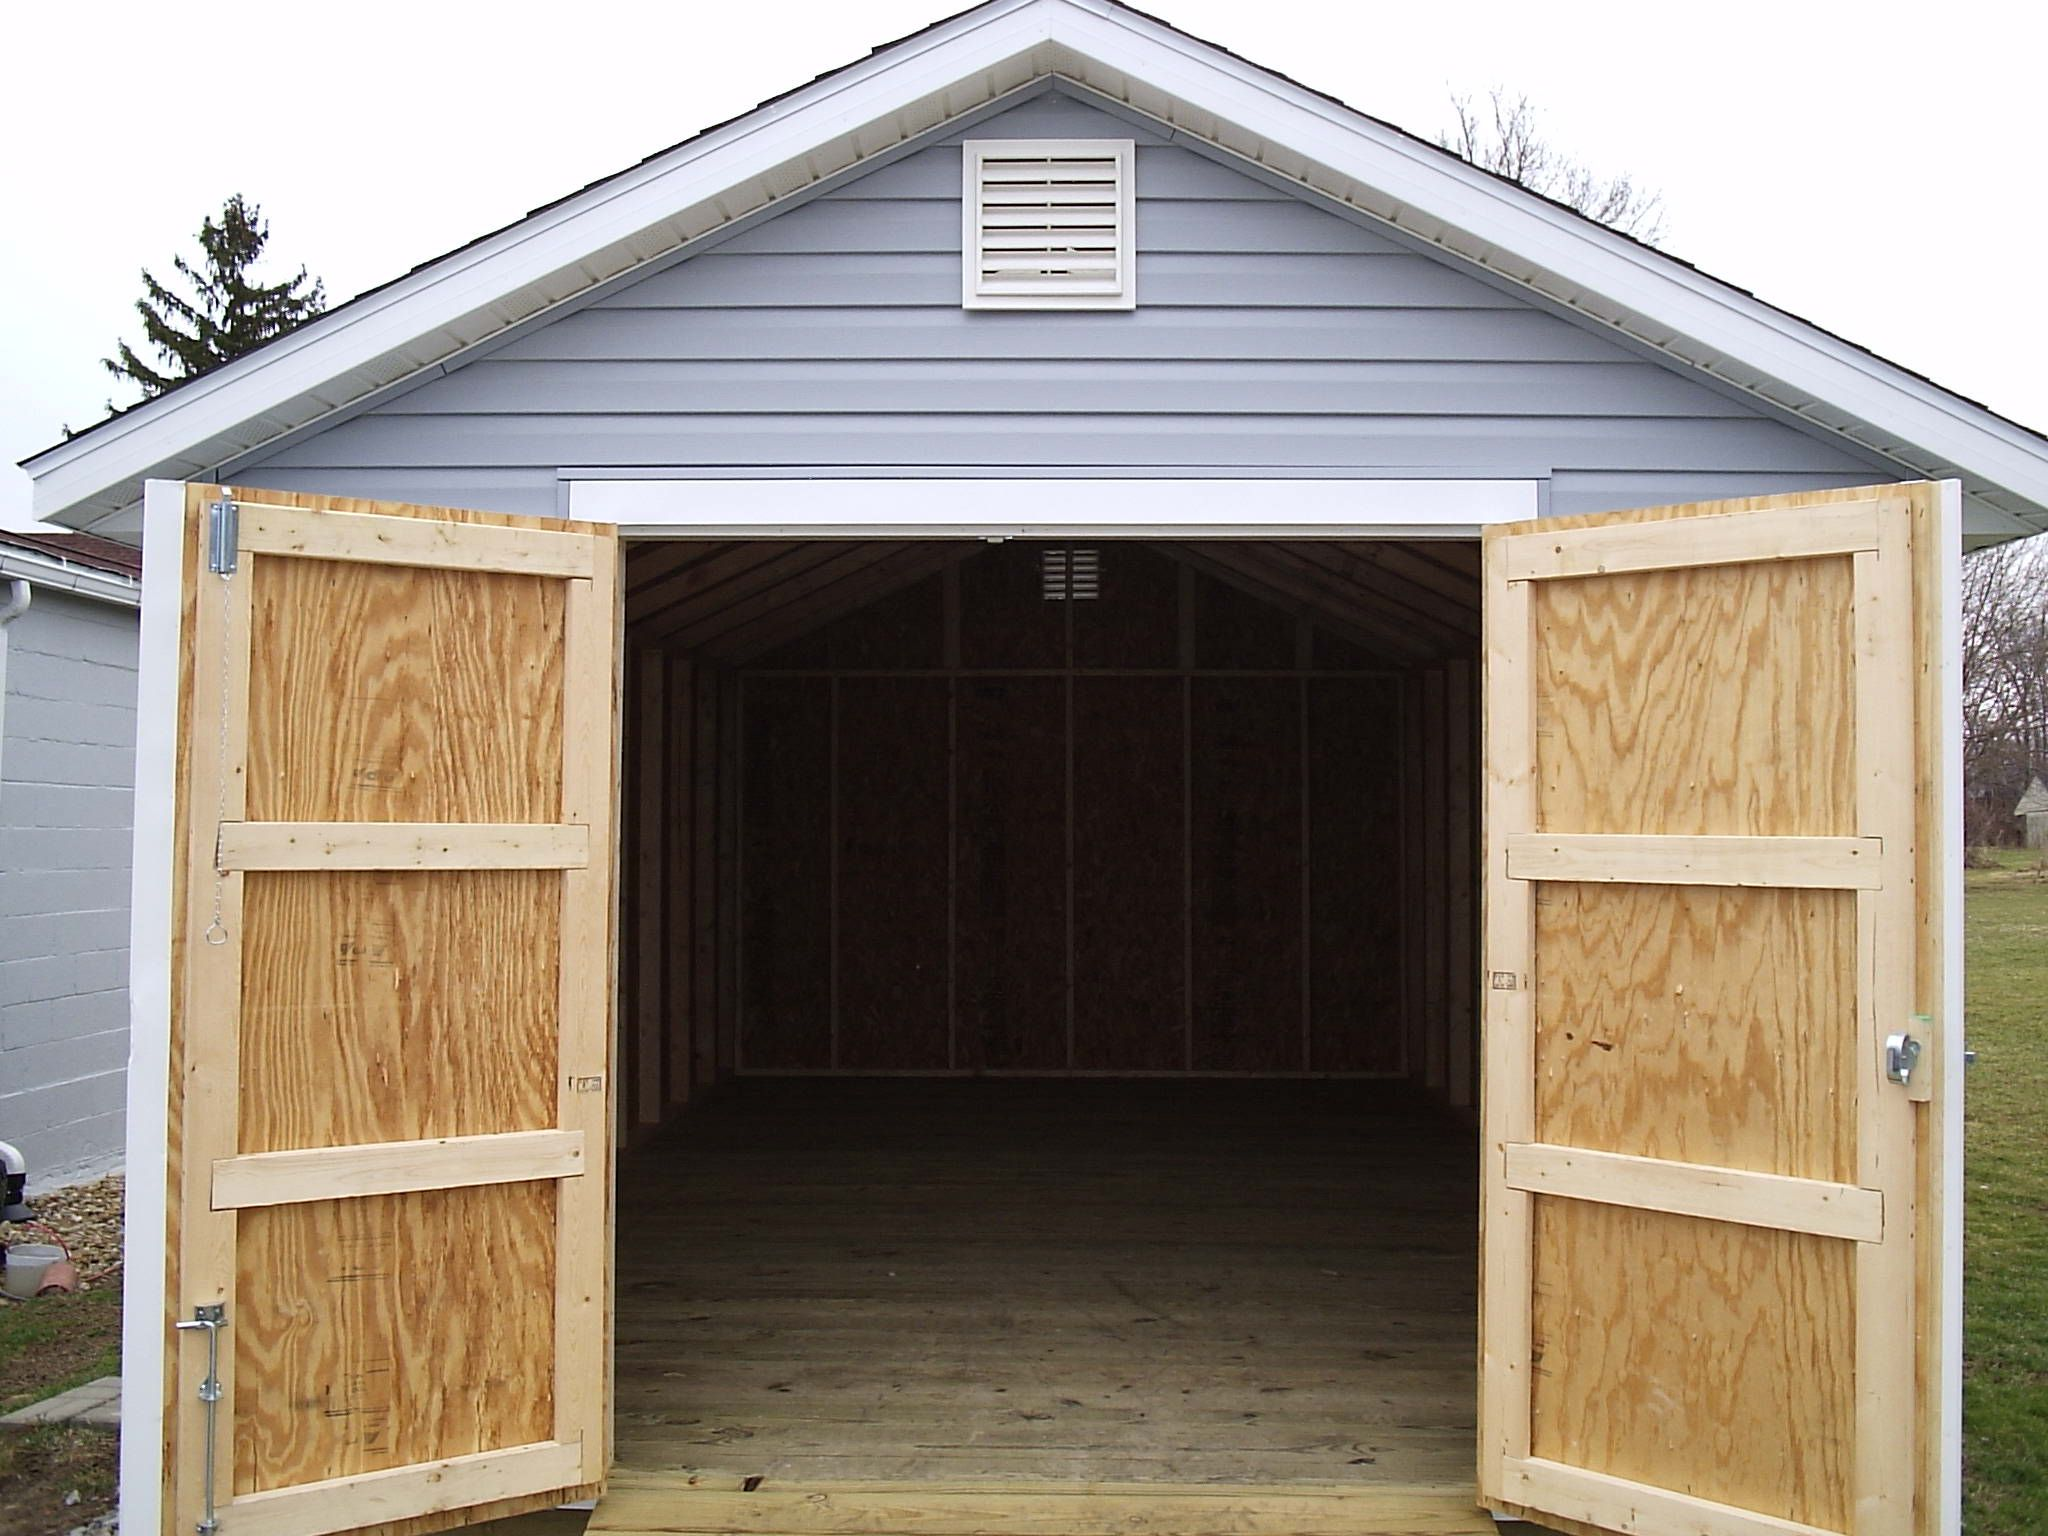 Shed Doors | Deere Shed in 2018 | Pinterest | Shed doors ...